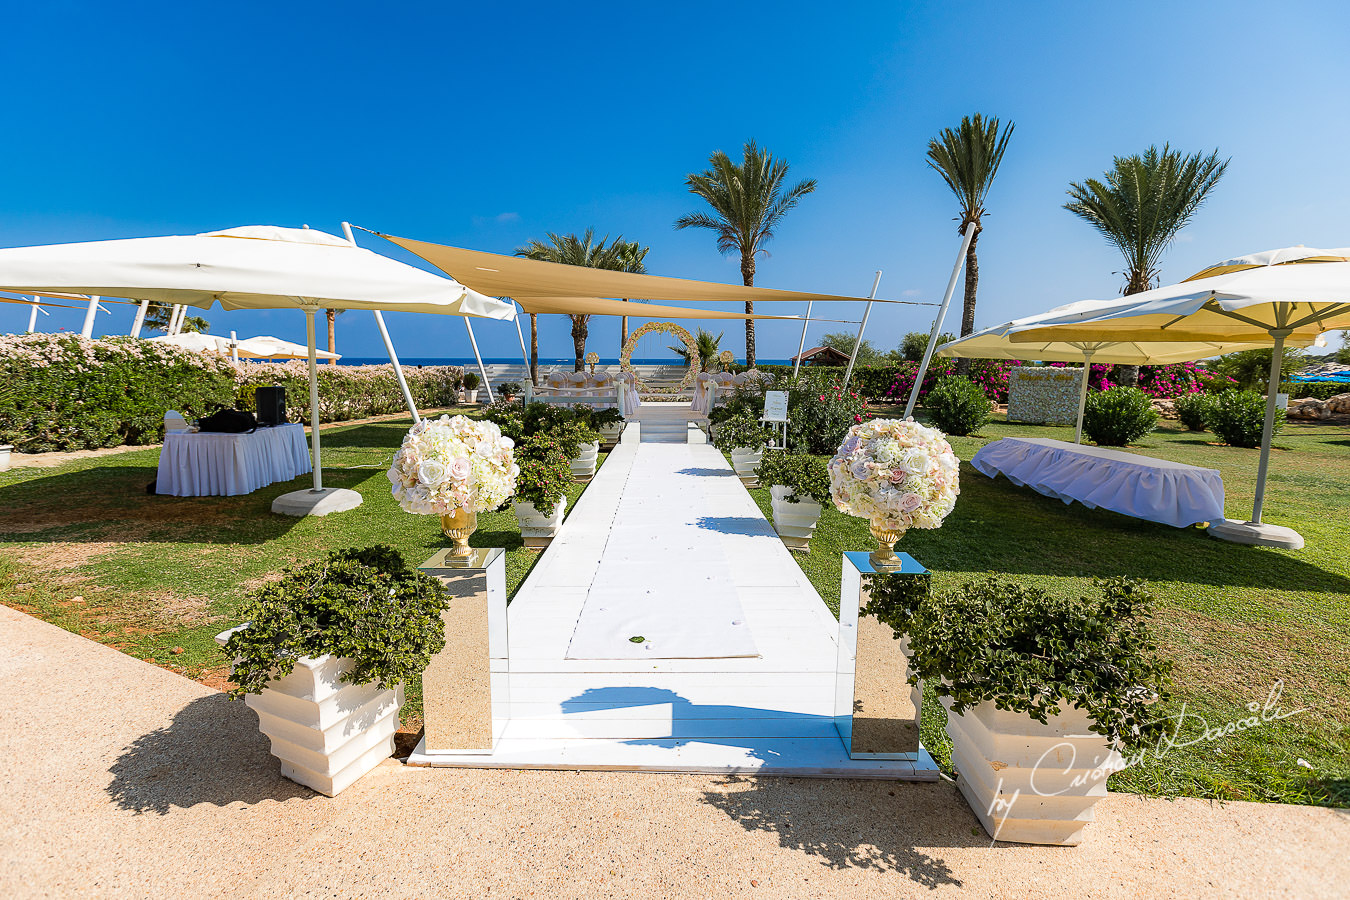 Exquisite Wedding at Asterias Beach Hotel. Photography by Cyprus Photographer Cristian Dascalu.